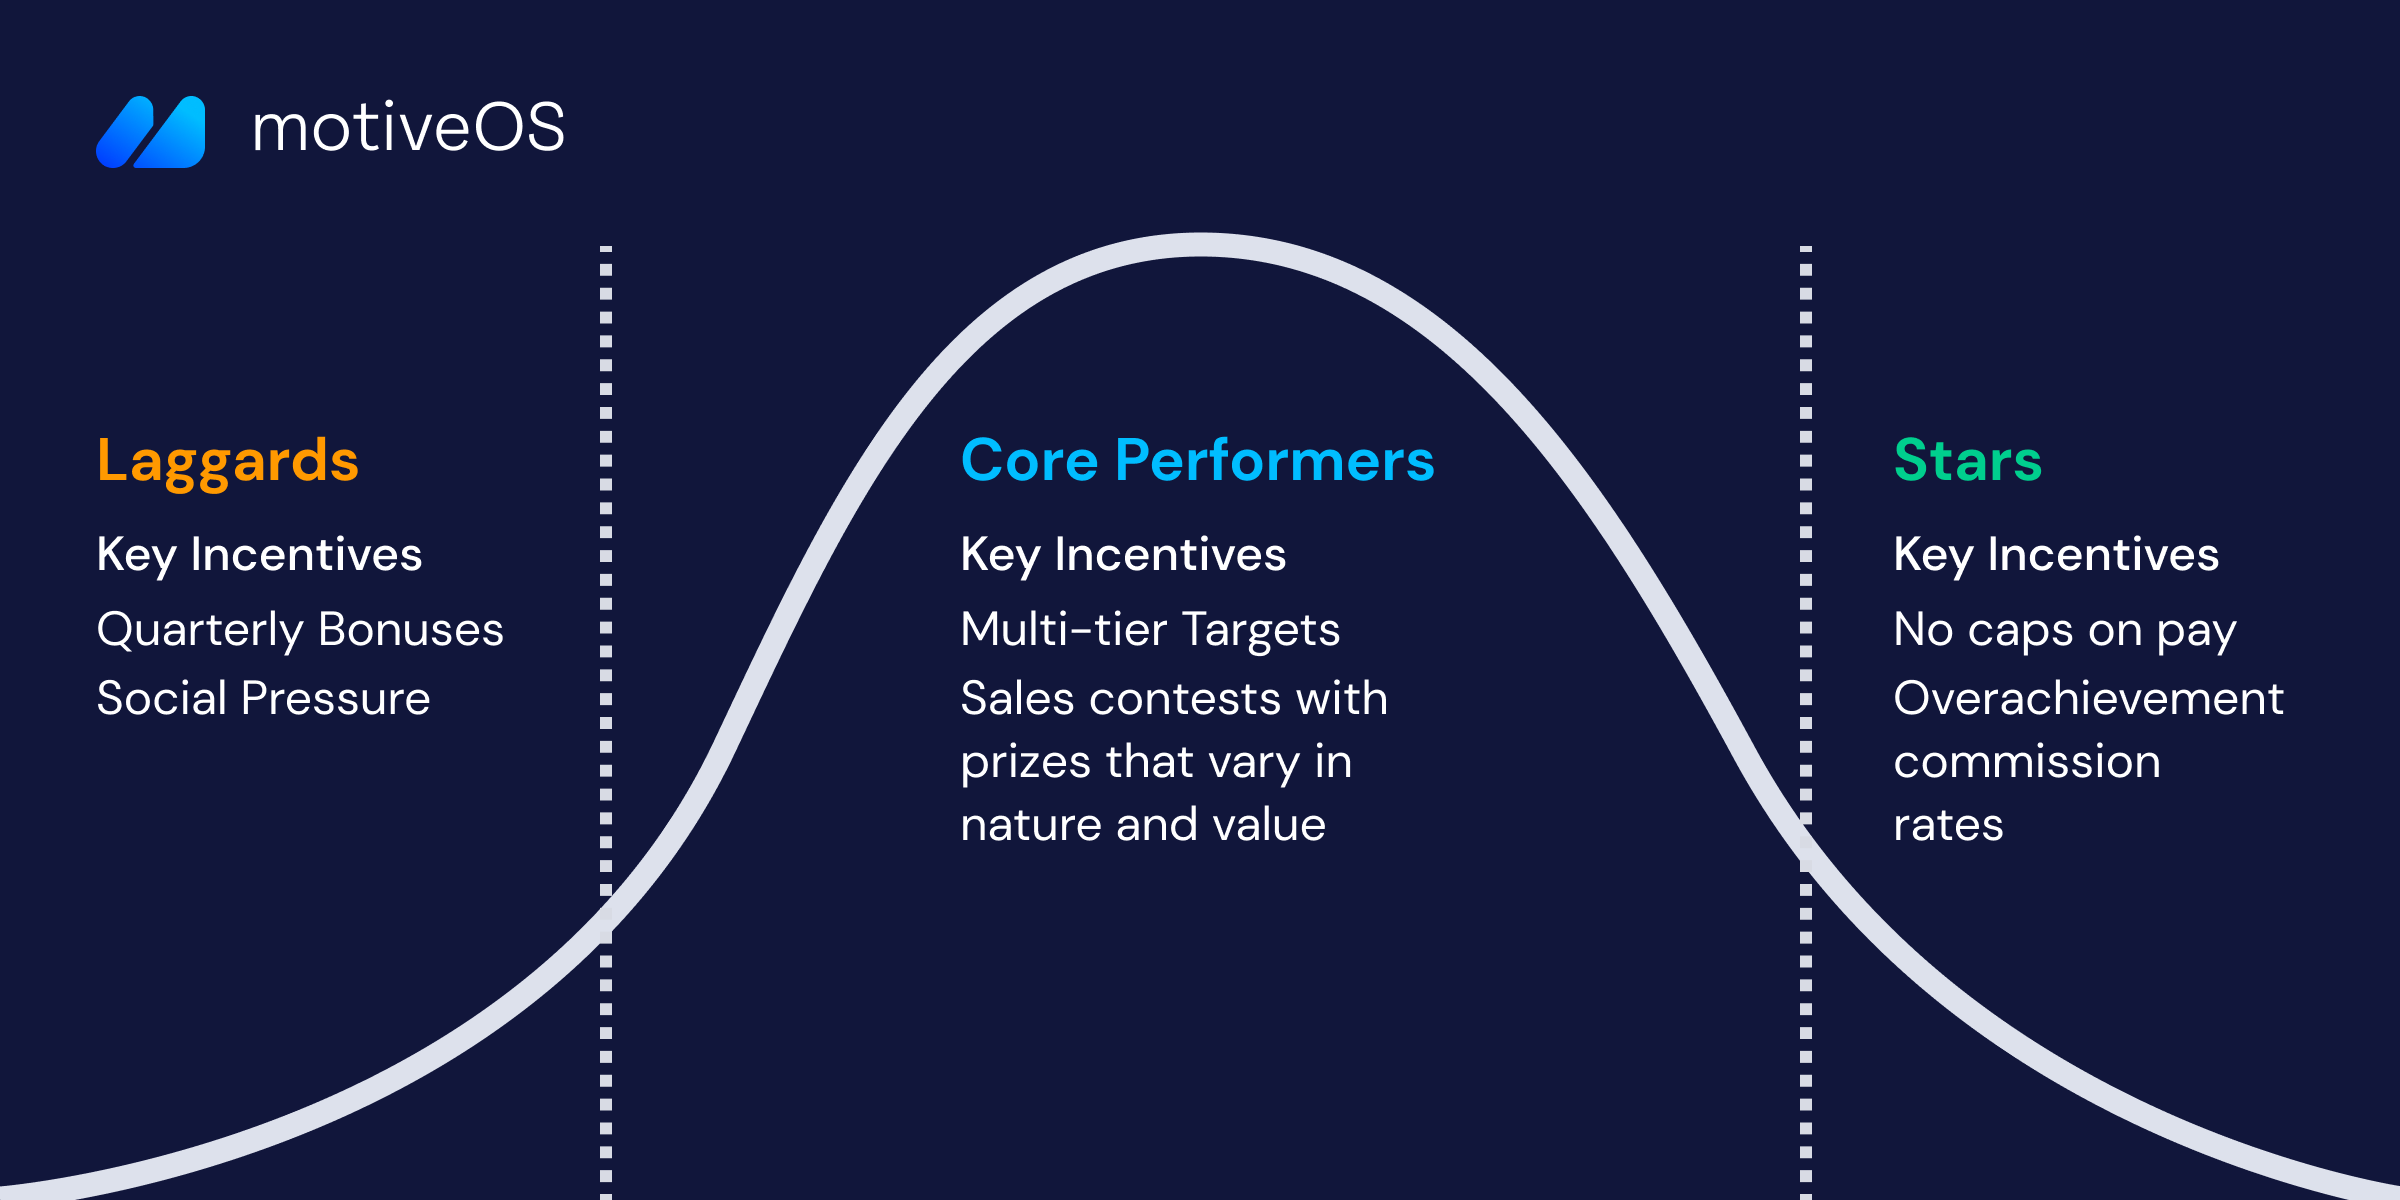 laggards-core-star-performers-curve